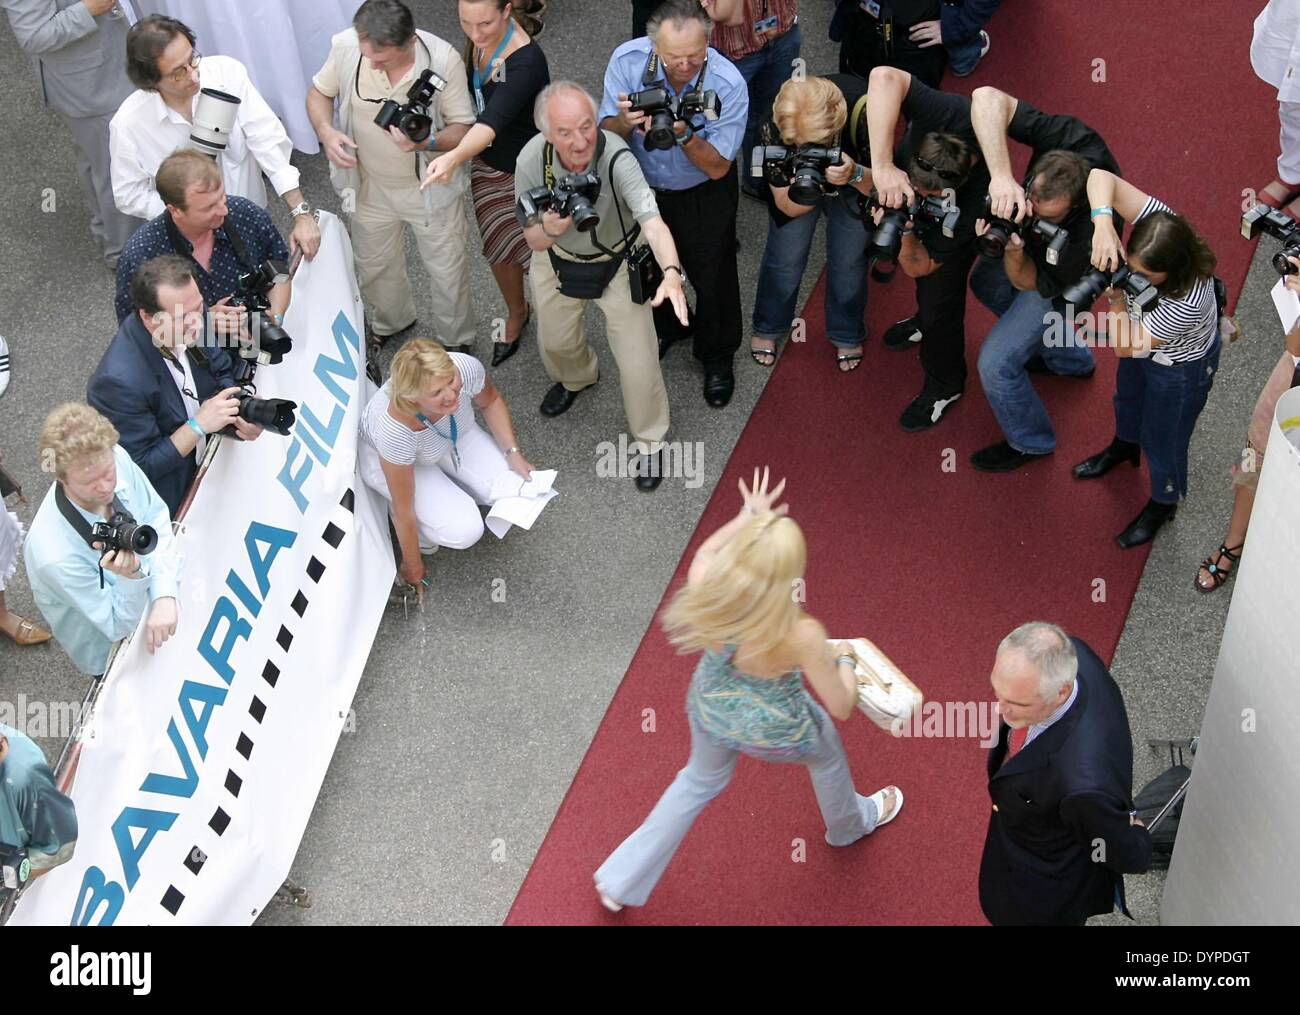 Reception of  'Bavaria Film' at 'Filmfest Muenchen', 2005 - Stock Image